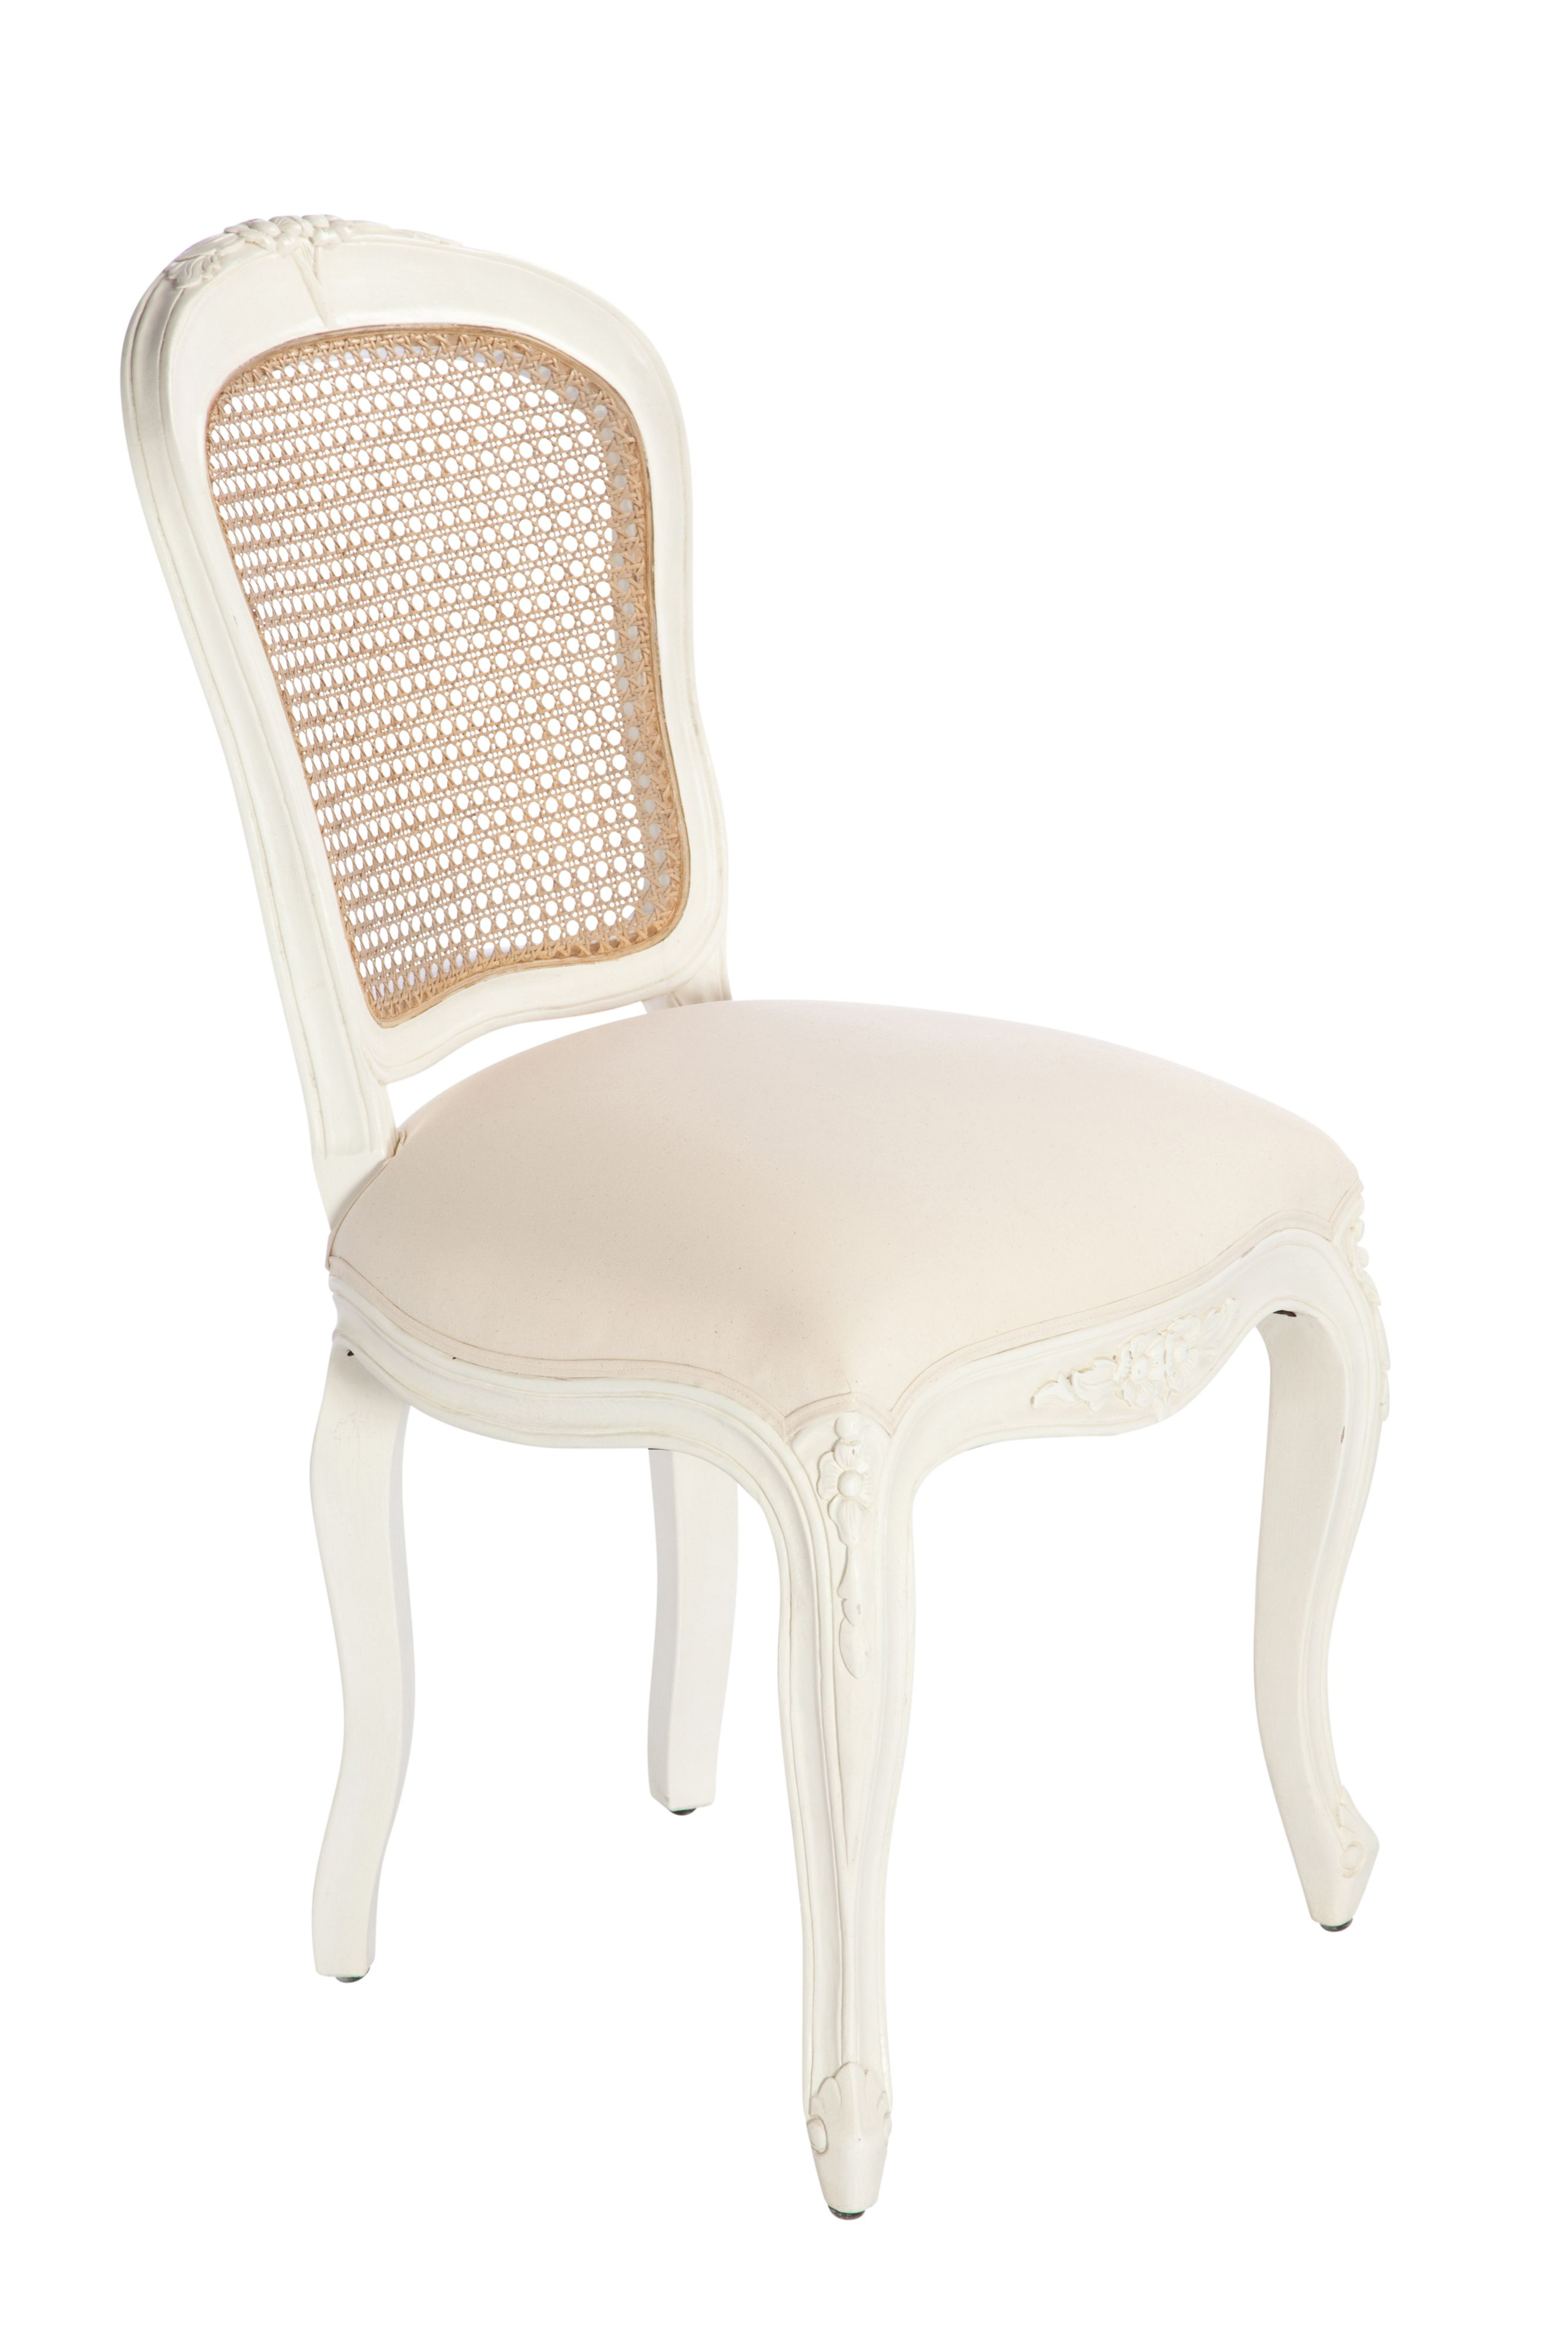 Simply Shabby Chic Chair Pads : SHABBY CHIC DINING CHAIR COVER Chair Pads & Cushions